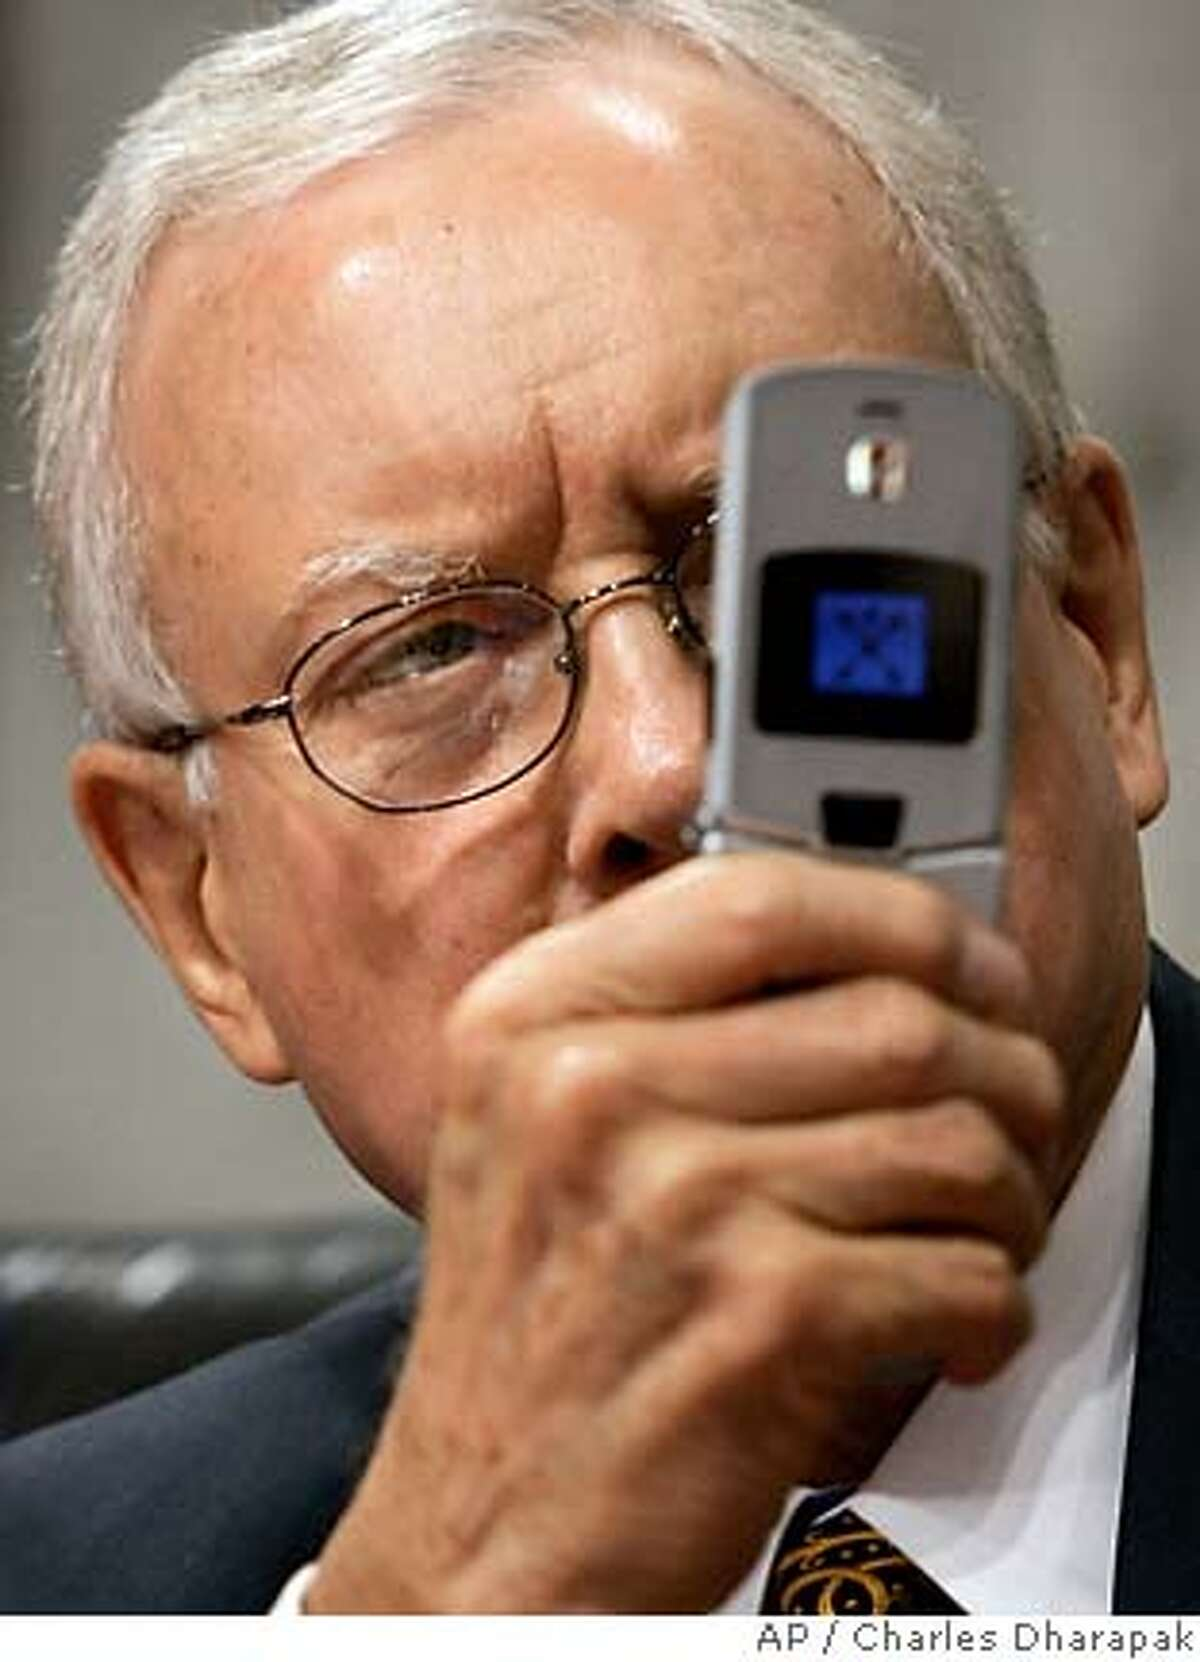 Senate Judiciary Committee member, Sen. Orrin Hatch, R-Utah, uses a cellphone camera as Chief Justice nominee John testifies at his confirmation hearing before the committee on Capitol Hill Thursday, Sept. 15, 2005. (AP Photo/Charles Dharapak)